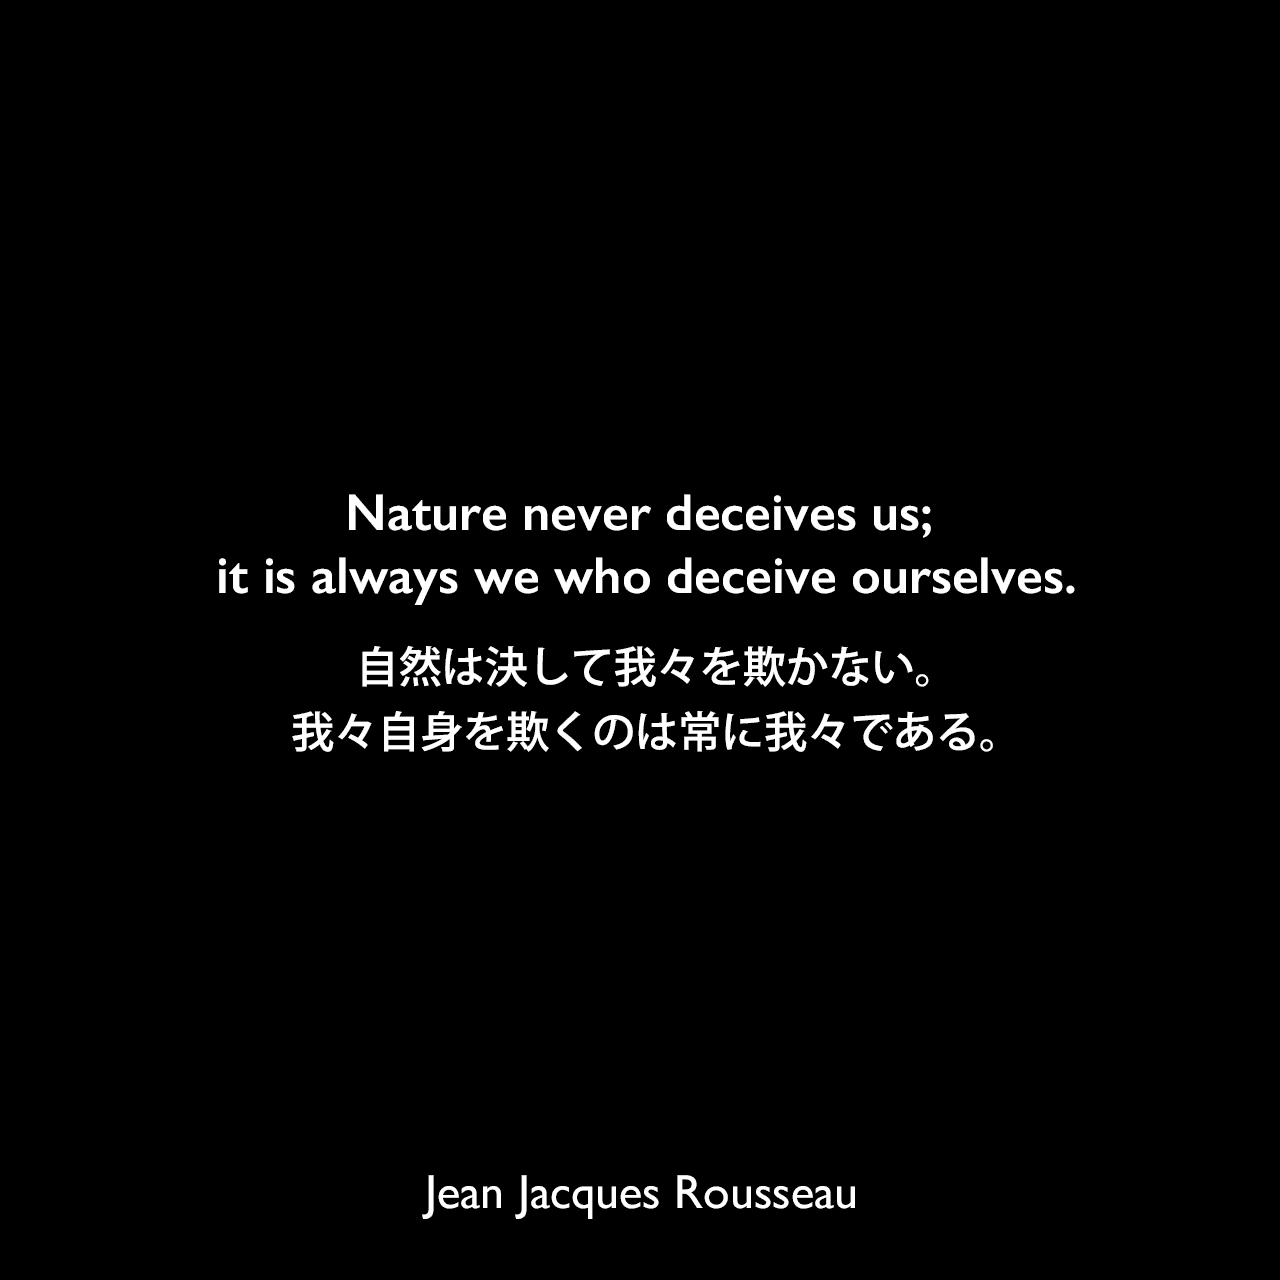 Nature never deceives us; it is always we who deceive ourselves.自然は決して我々を欺かない。我々自身を欺くのは常に我々である。Jean Jacques Rousseau